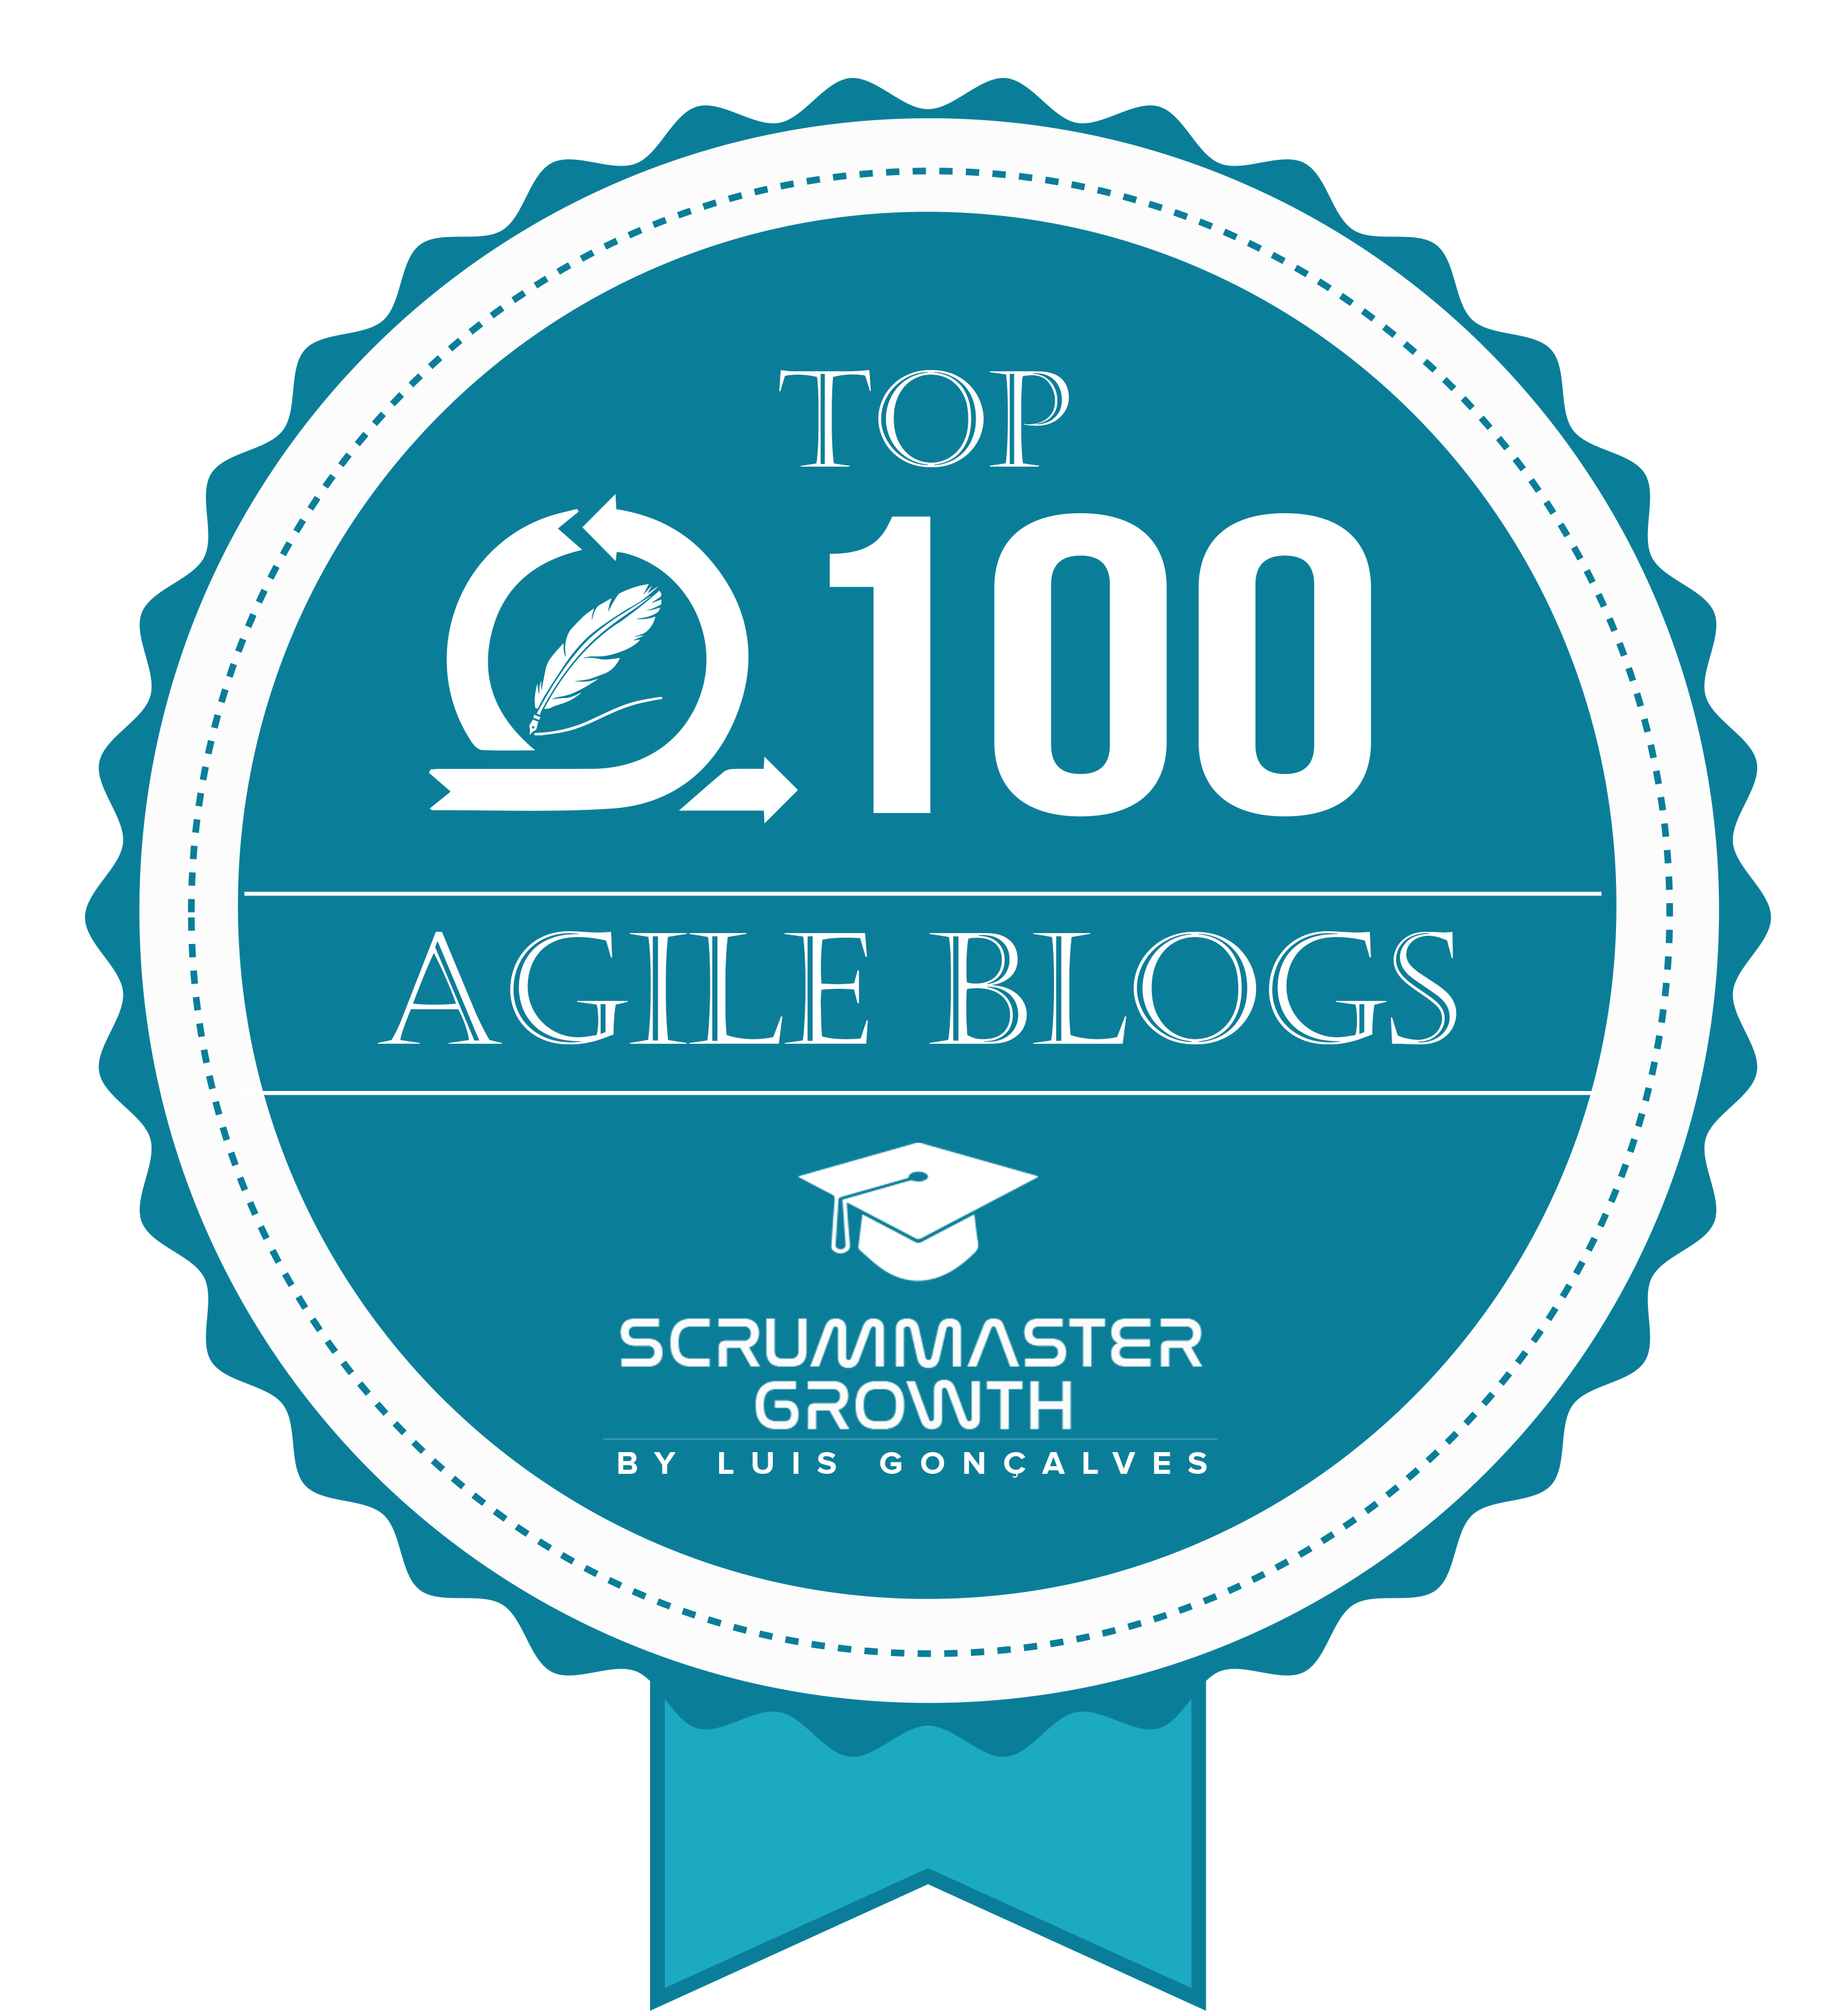 Top 100 Agile Blogs Badge.png